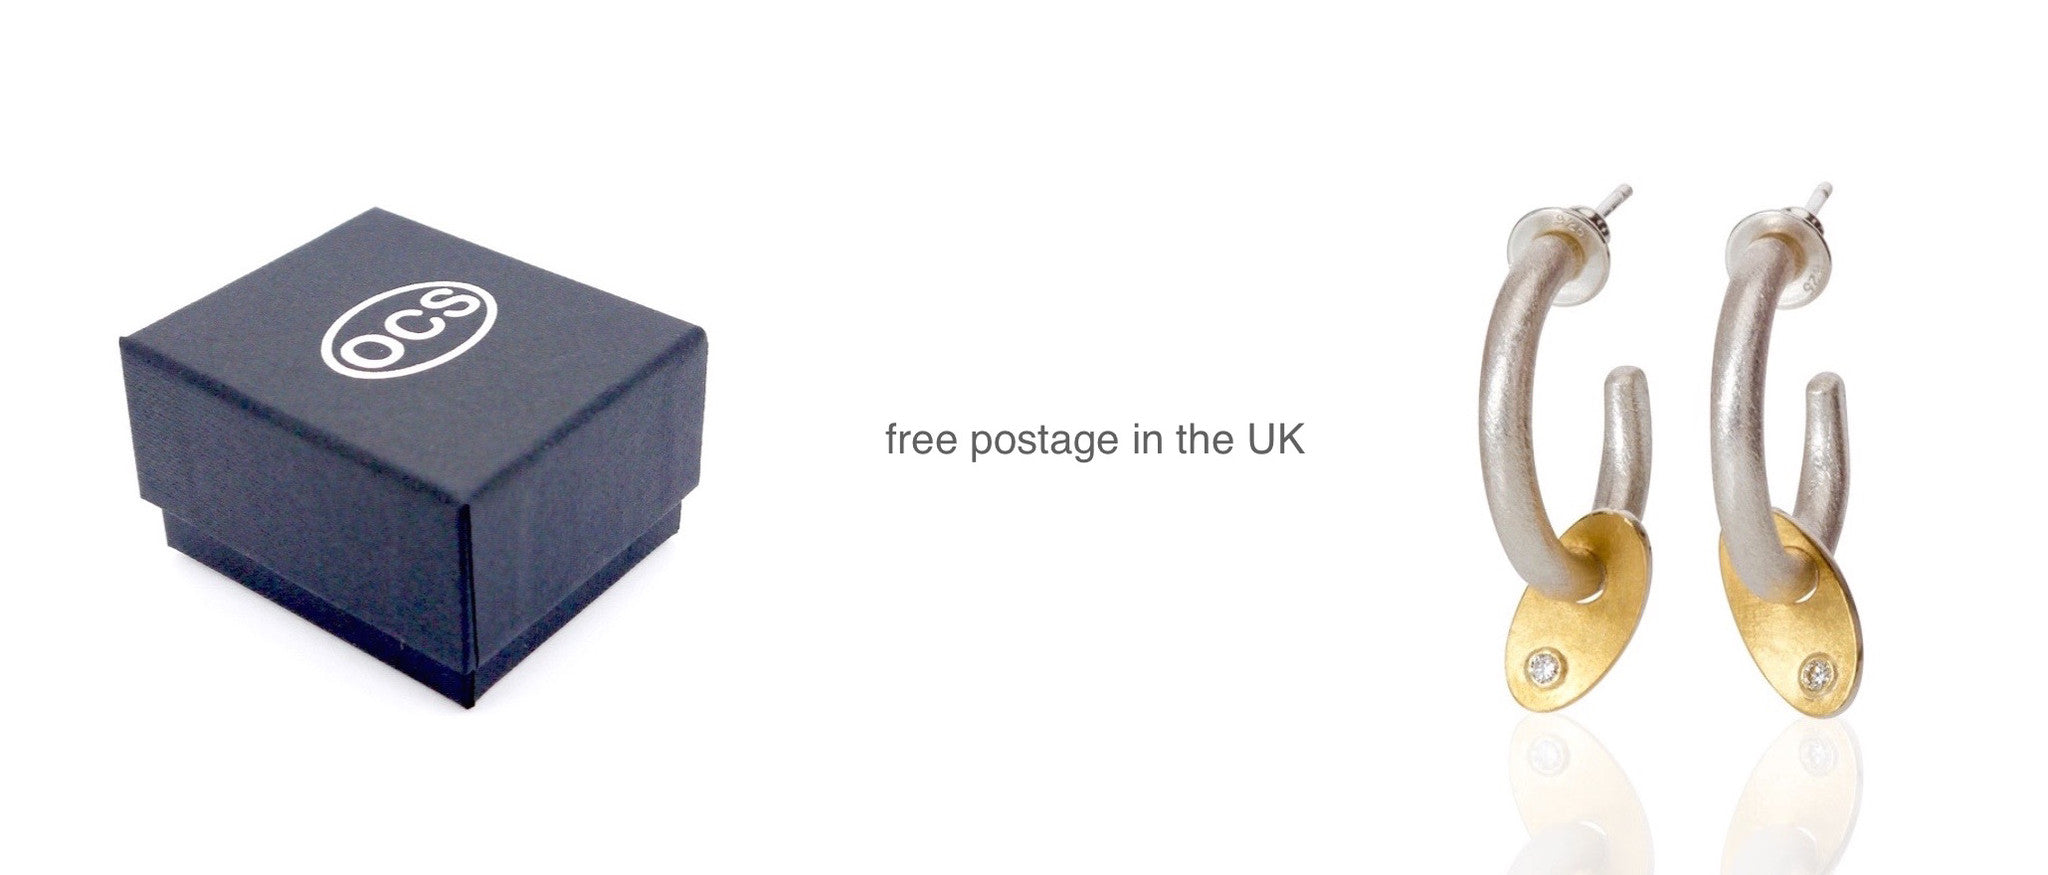 Free postage & packing